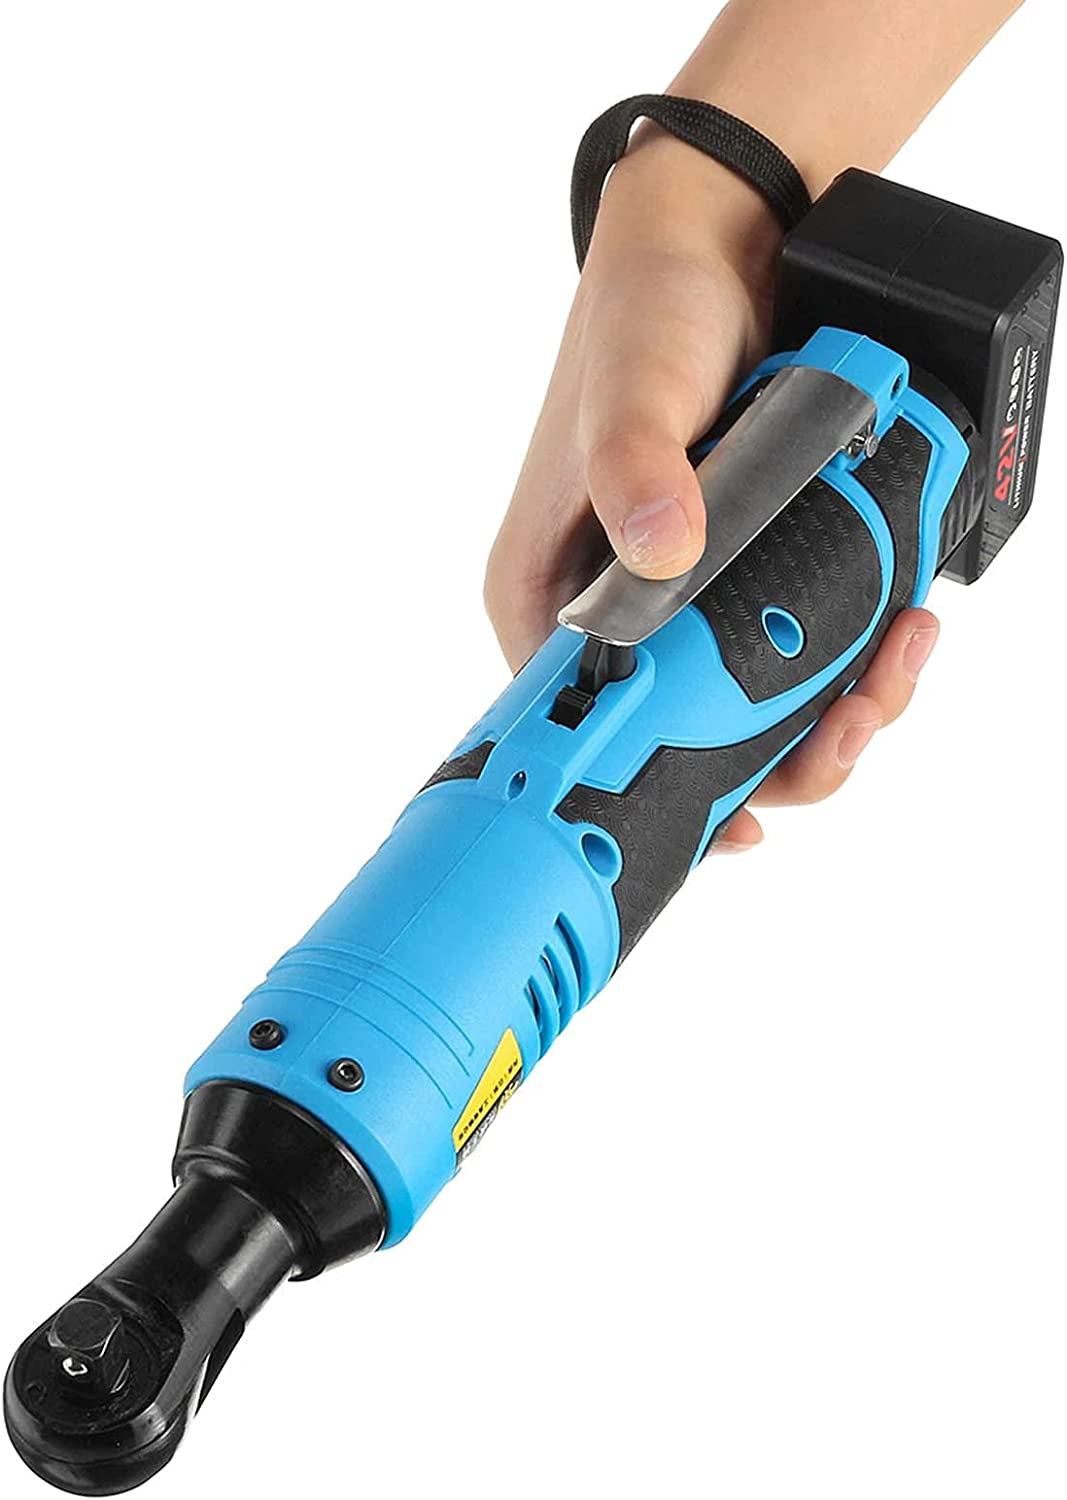 Ratchet Wrench Electric 3 Rechar 42V Surprise price 8